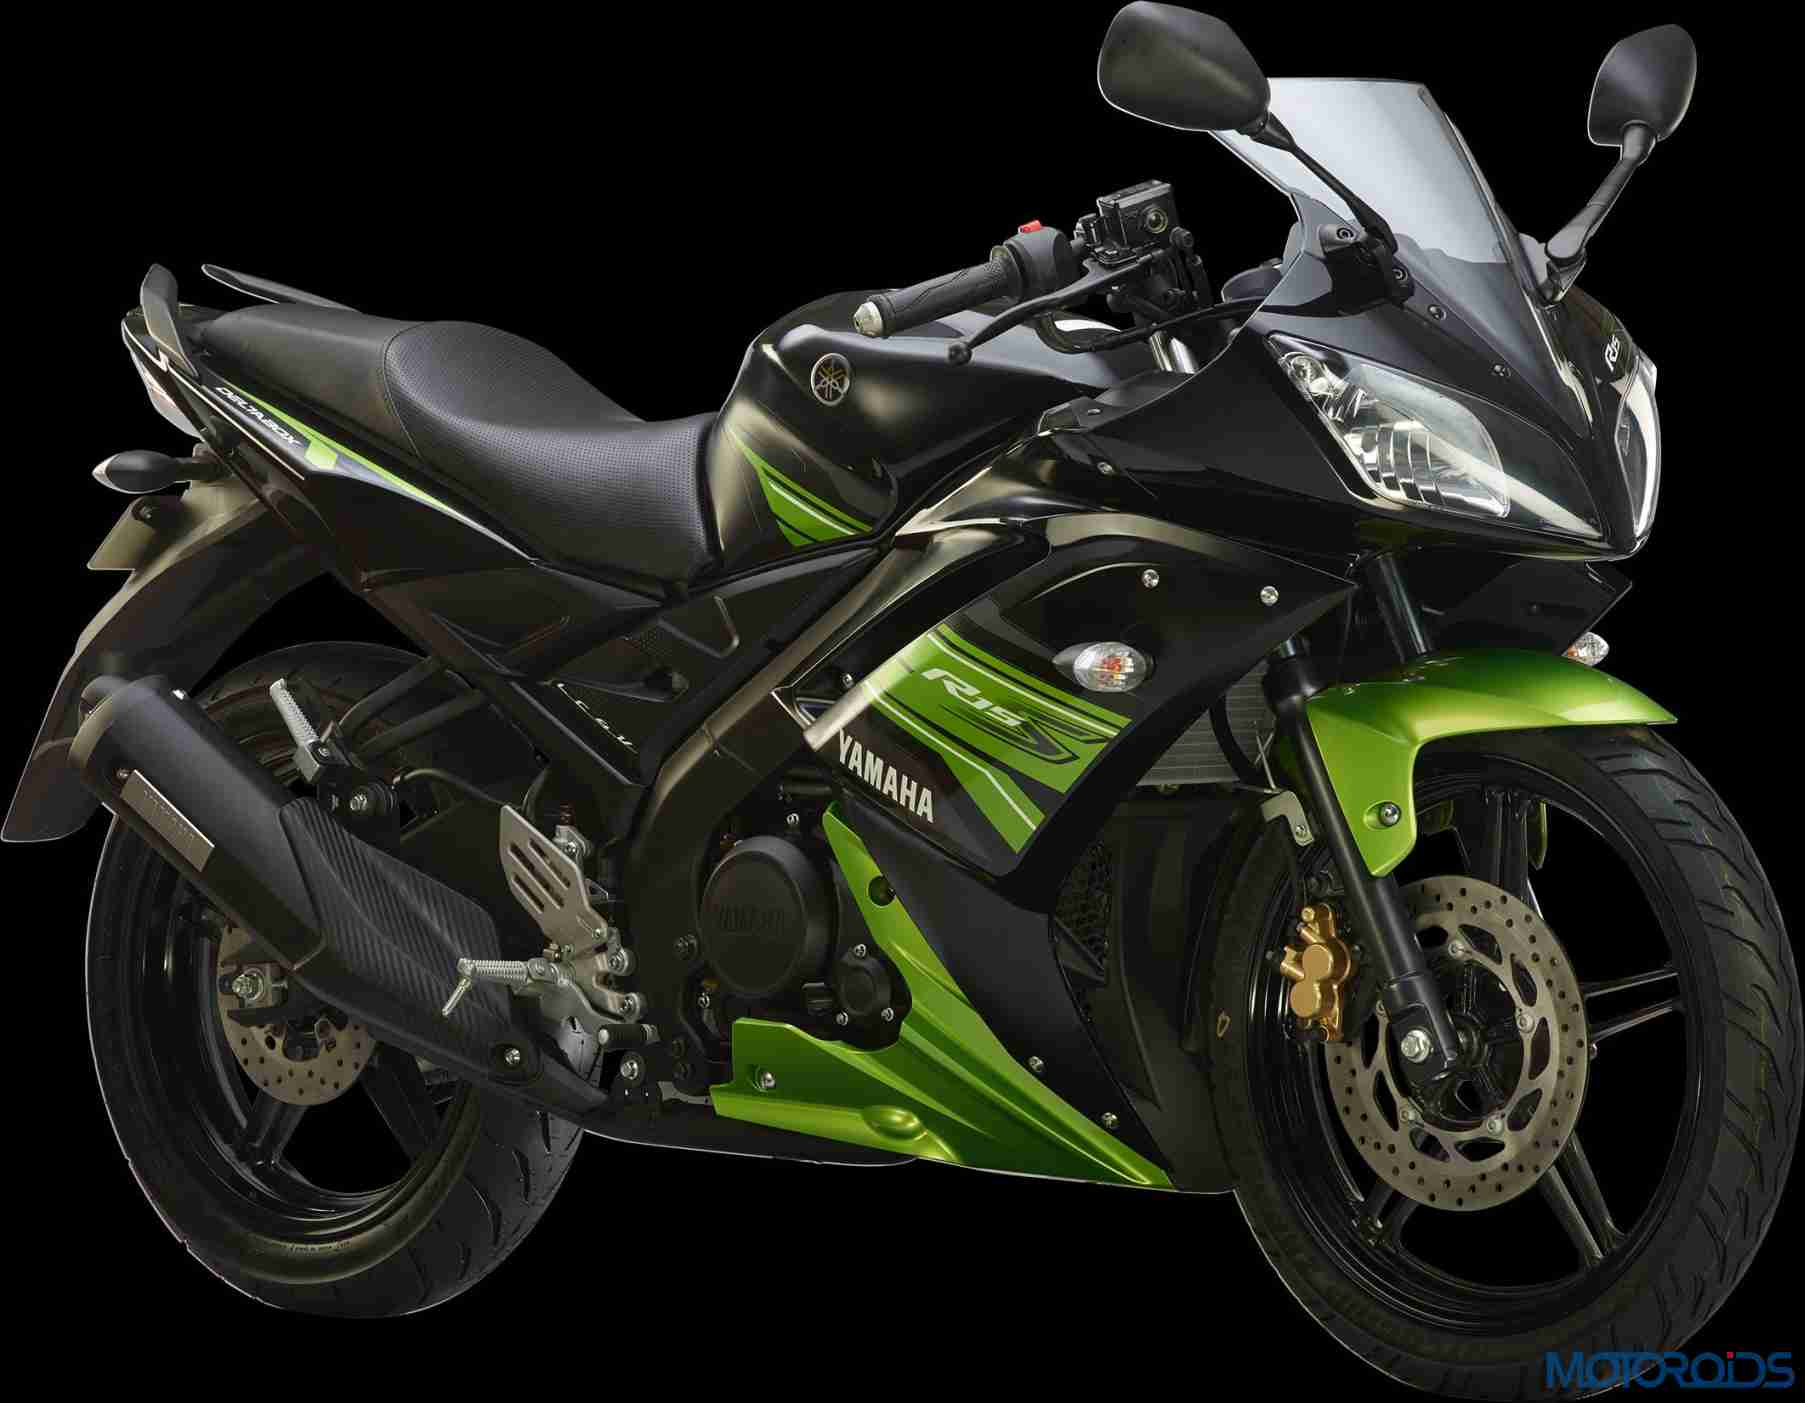 Yamaha Yzf R15 S Launched Priced At Inr 1 14 Lakh Motoroids